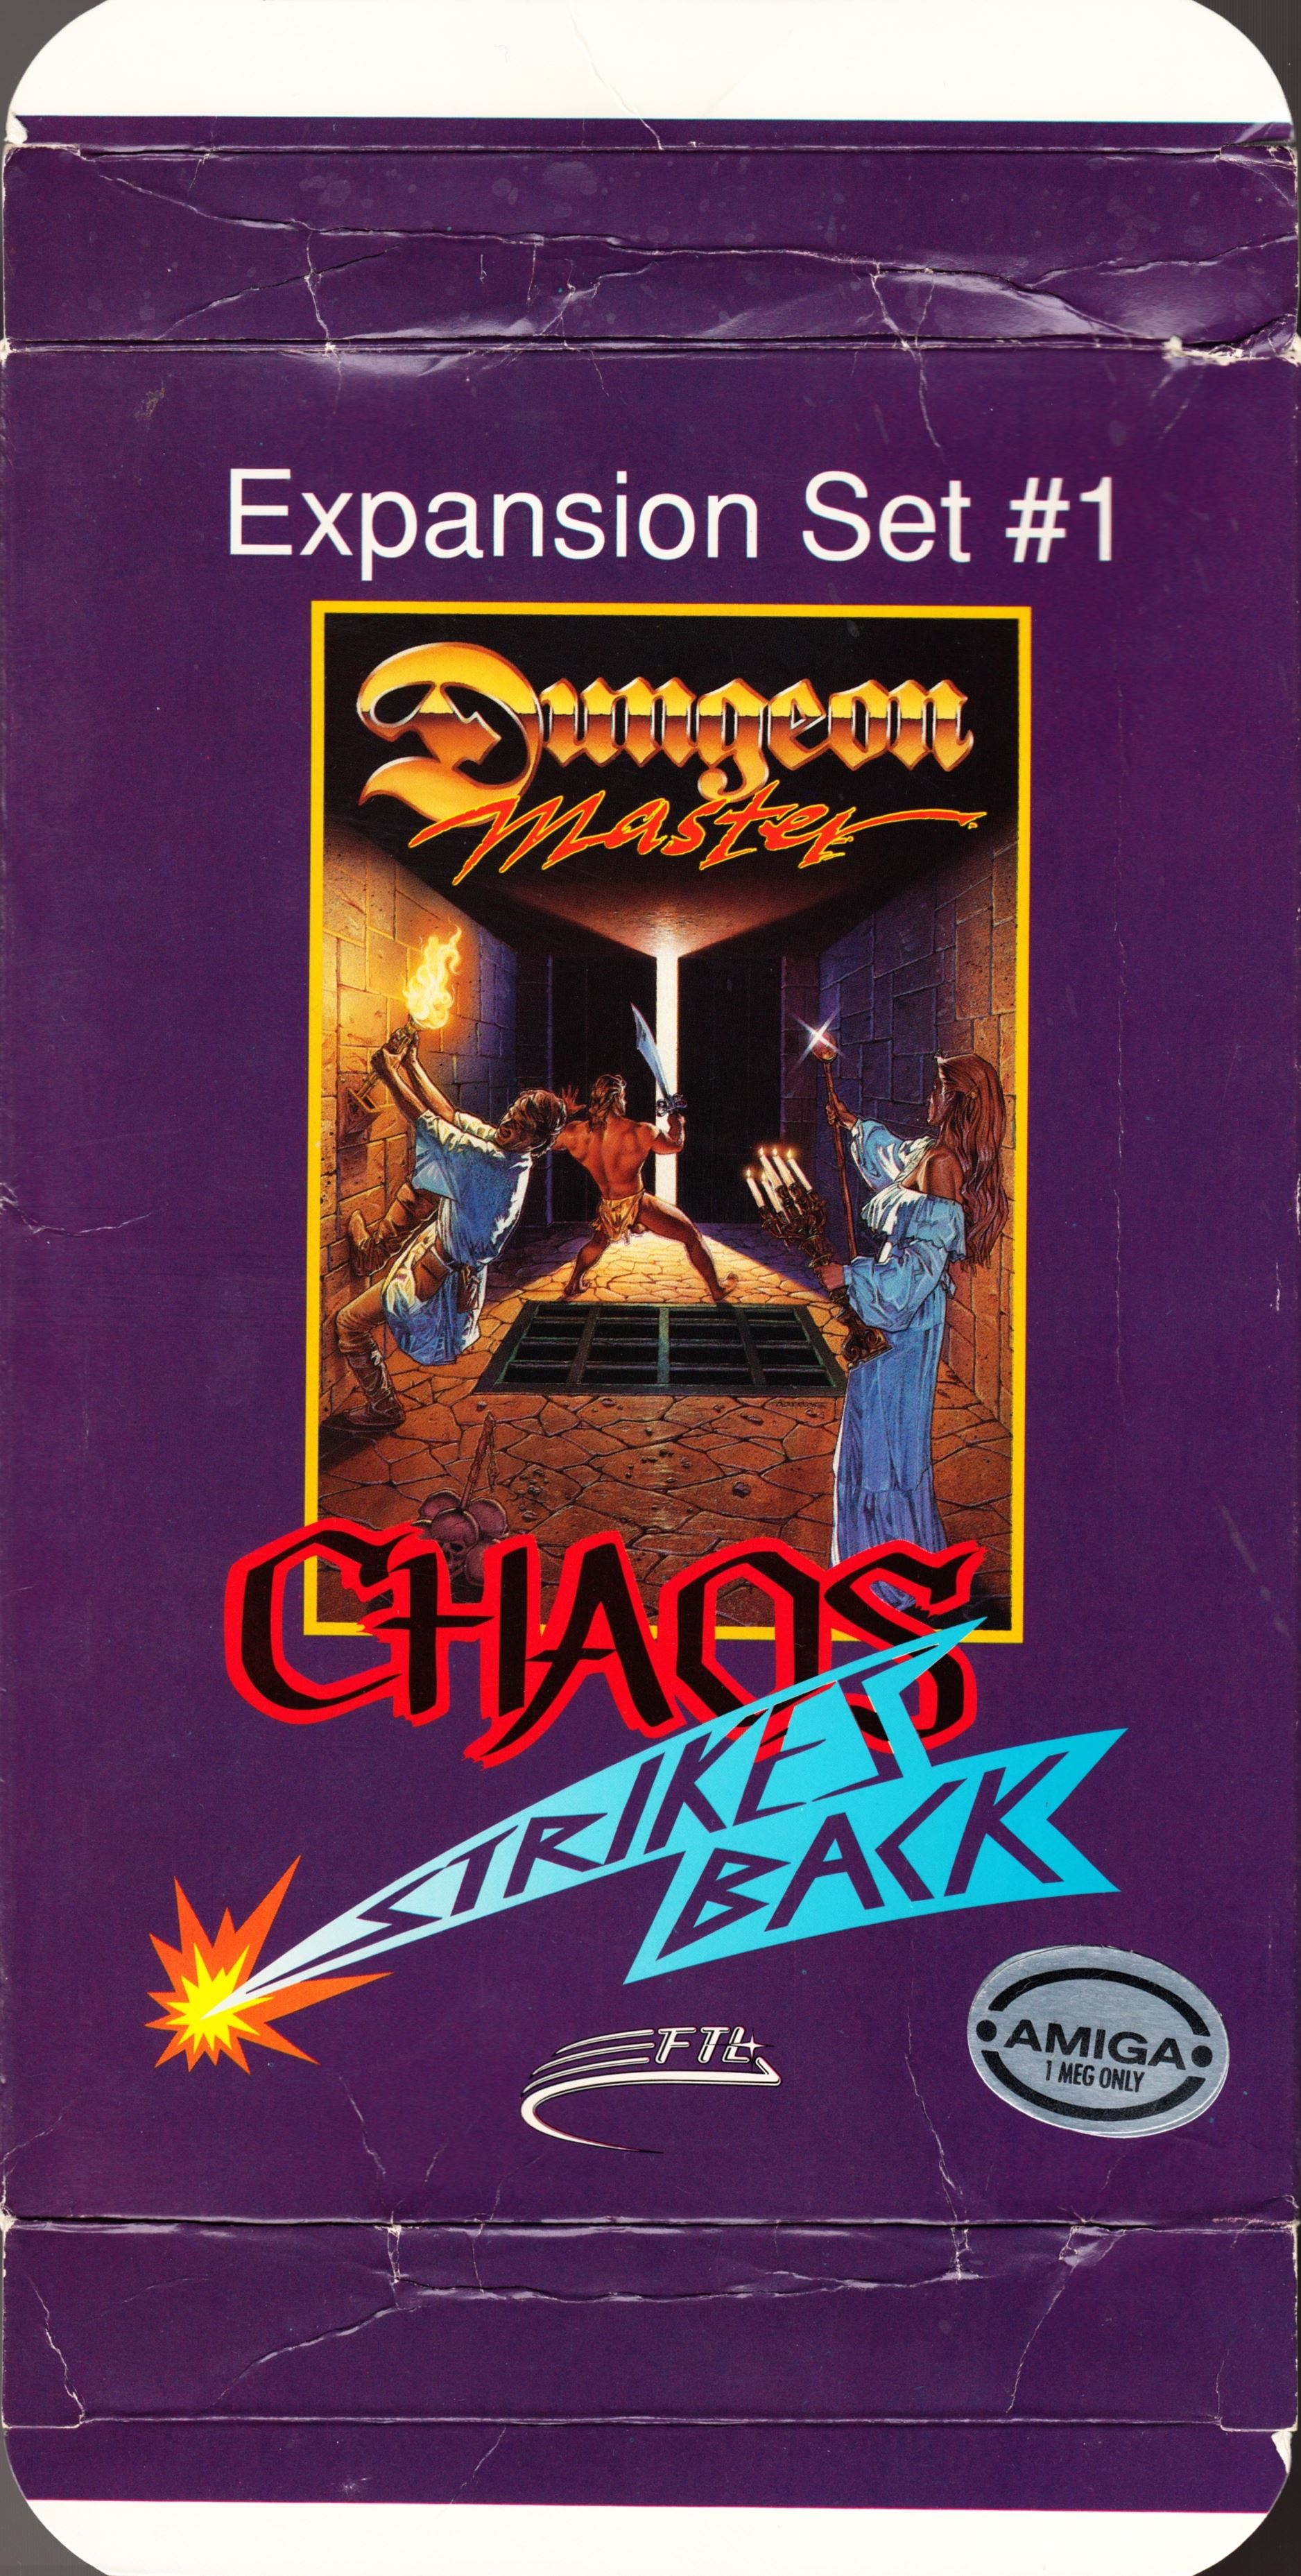 Game - Chaos Strikes Back - UK - Amiga - Box - Front Top Bottom - Scan